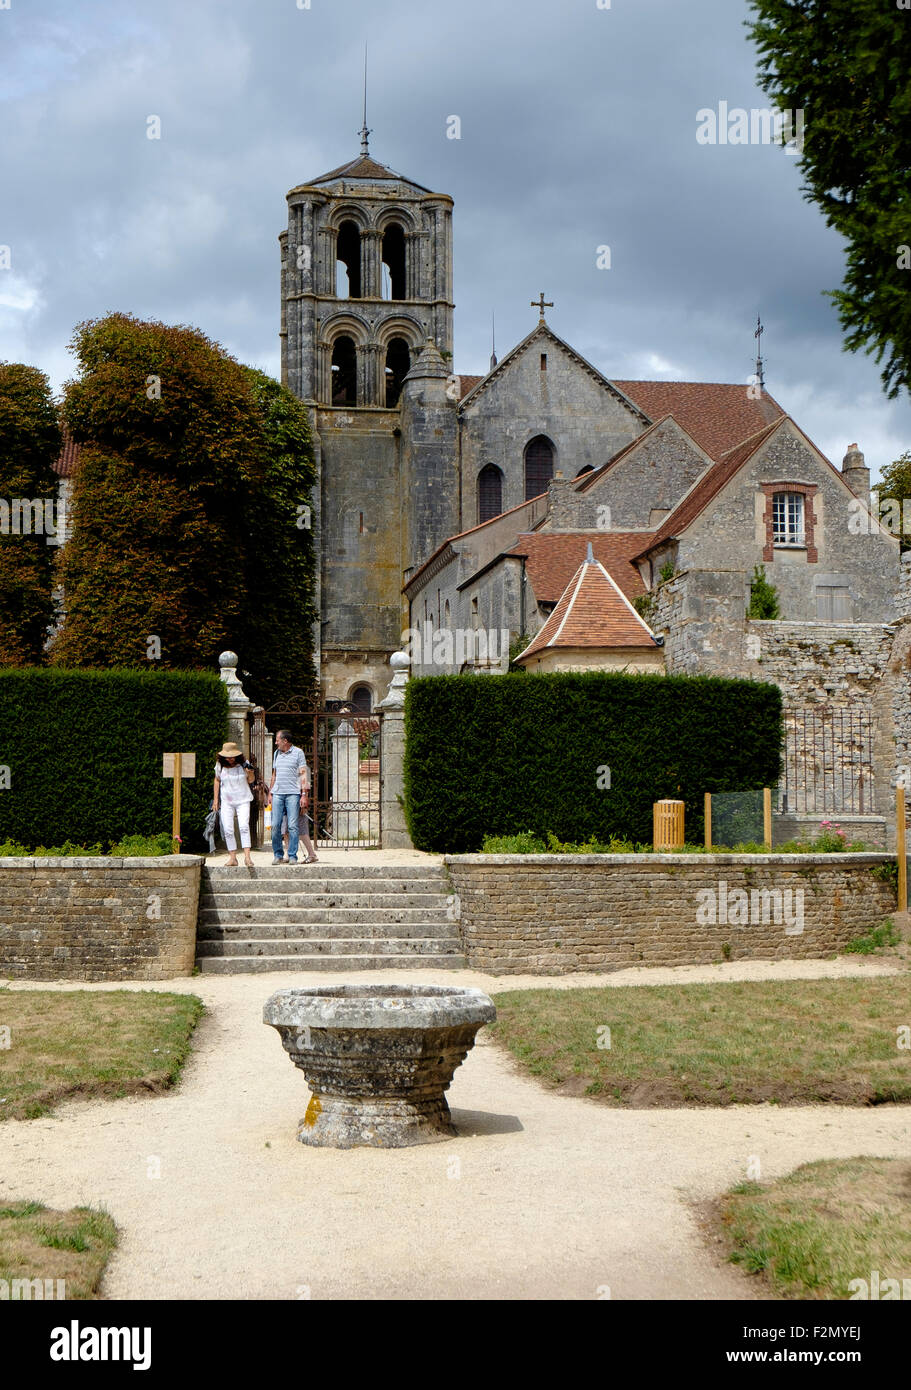 Gardens in the Abbey of Vezelay, Burgundy, France - Stock Image